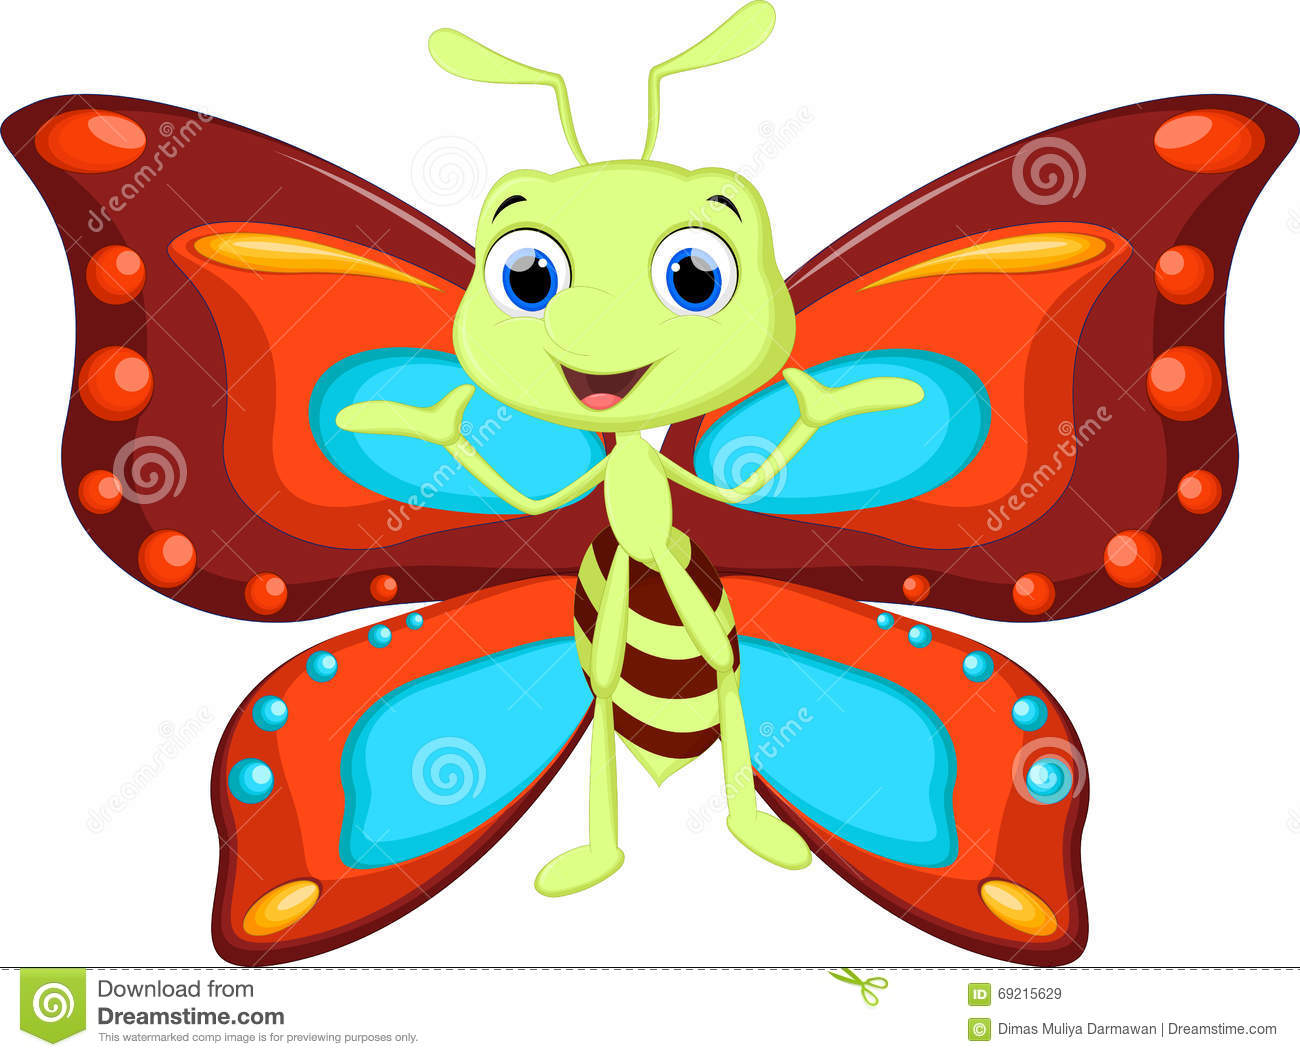 cute butterfly cartoon stock illustration image 69215629